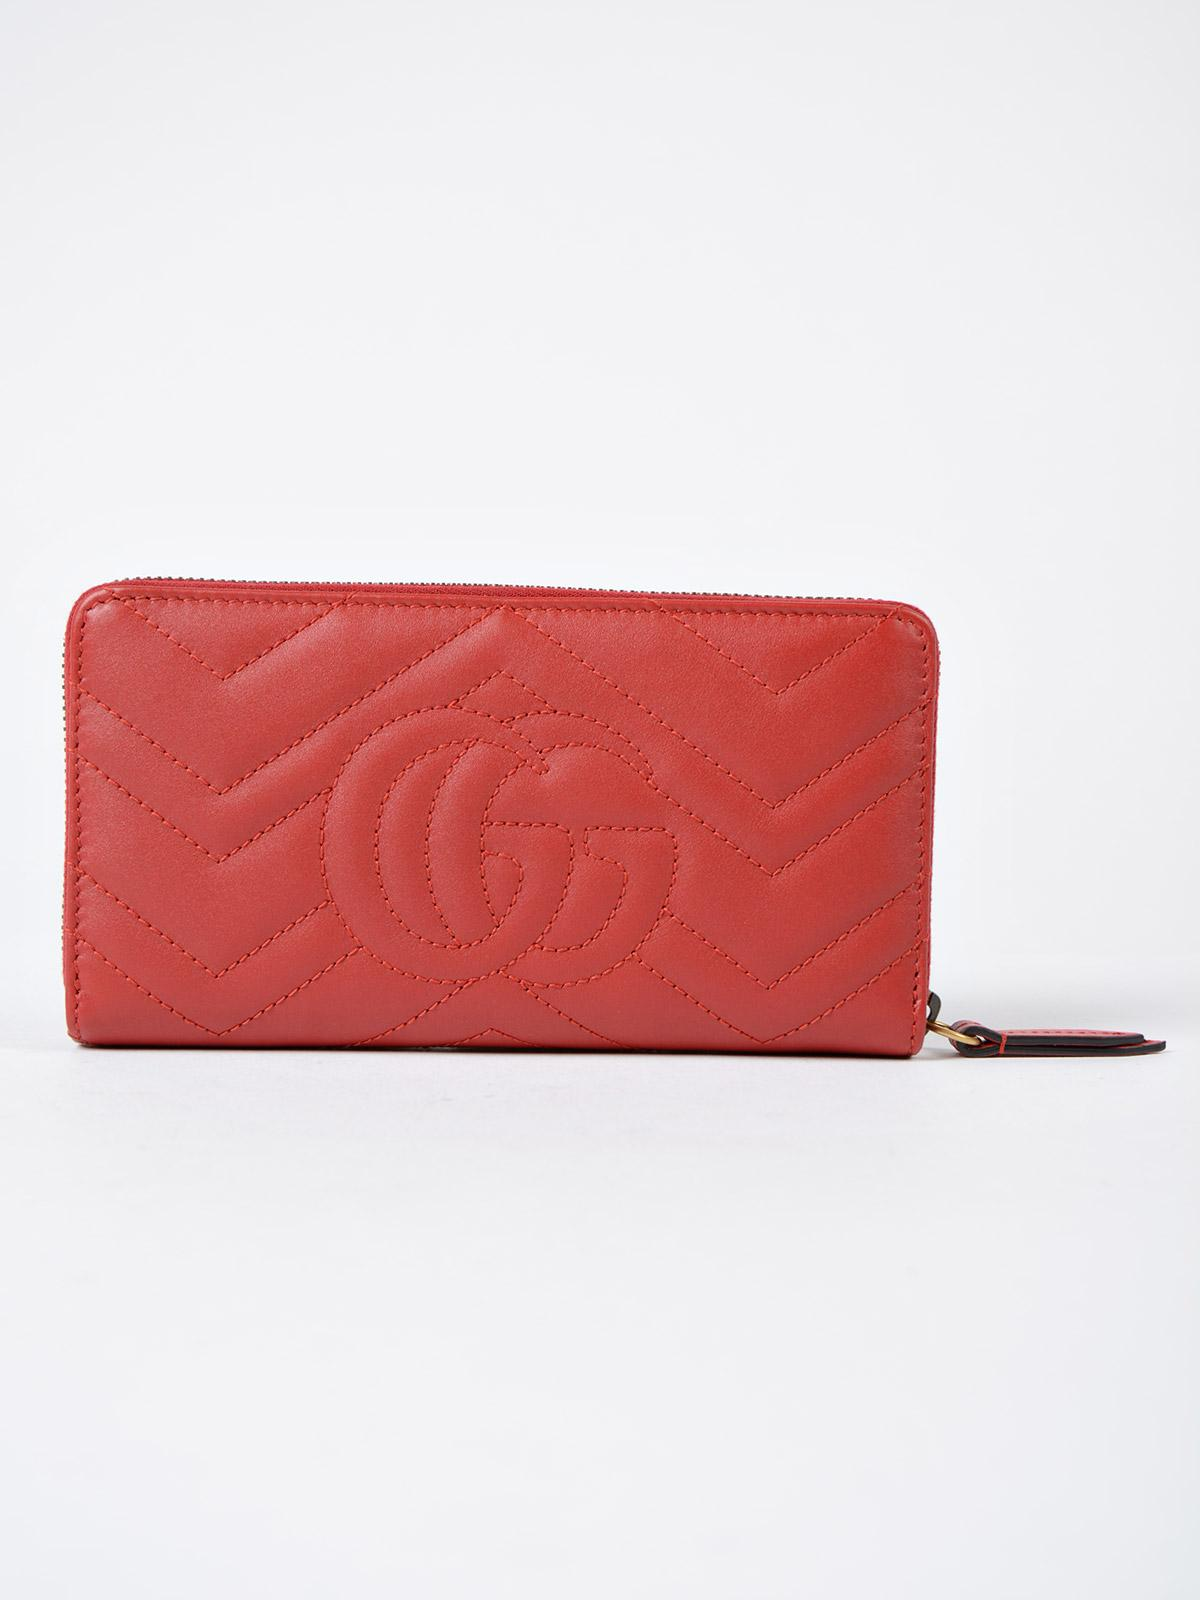 13deca982ad Gucci - Red GG Marmont 2.0 Zip Around Wallet - Lyst. View fullscreen